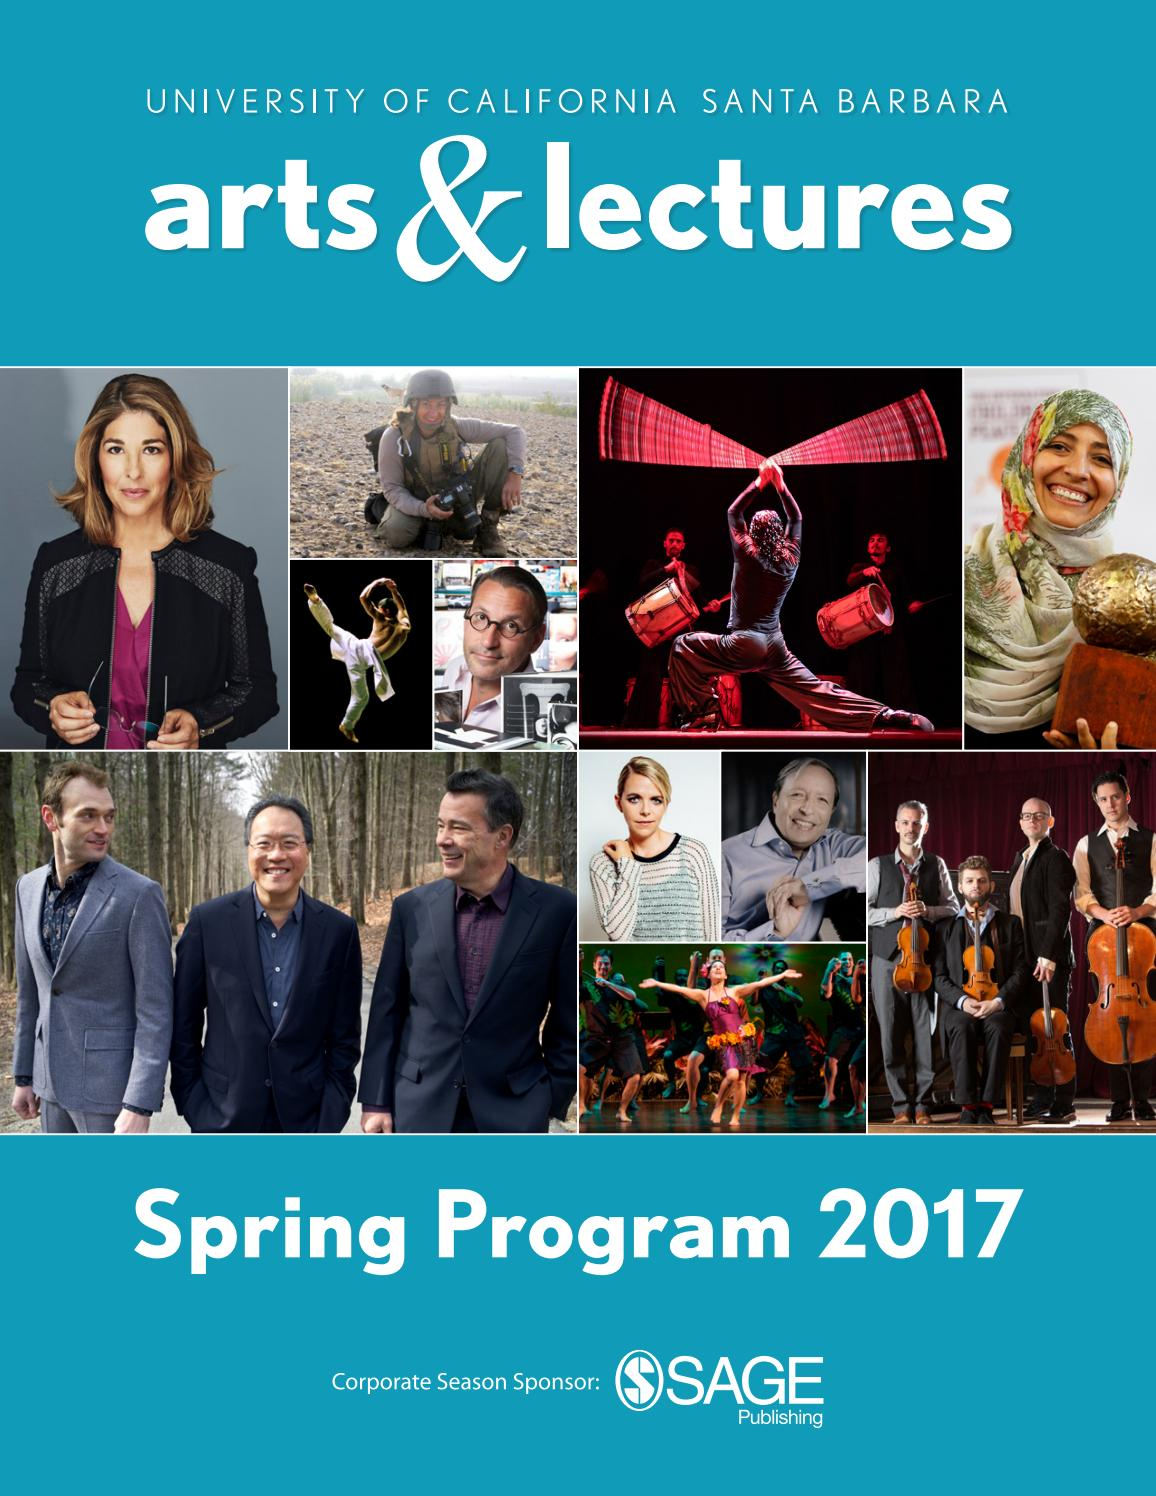 Ina Mae Spivey Delightful ucsb arts & lectures - spring program 2017ucsb arts & lectures